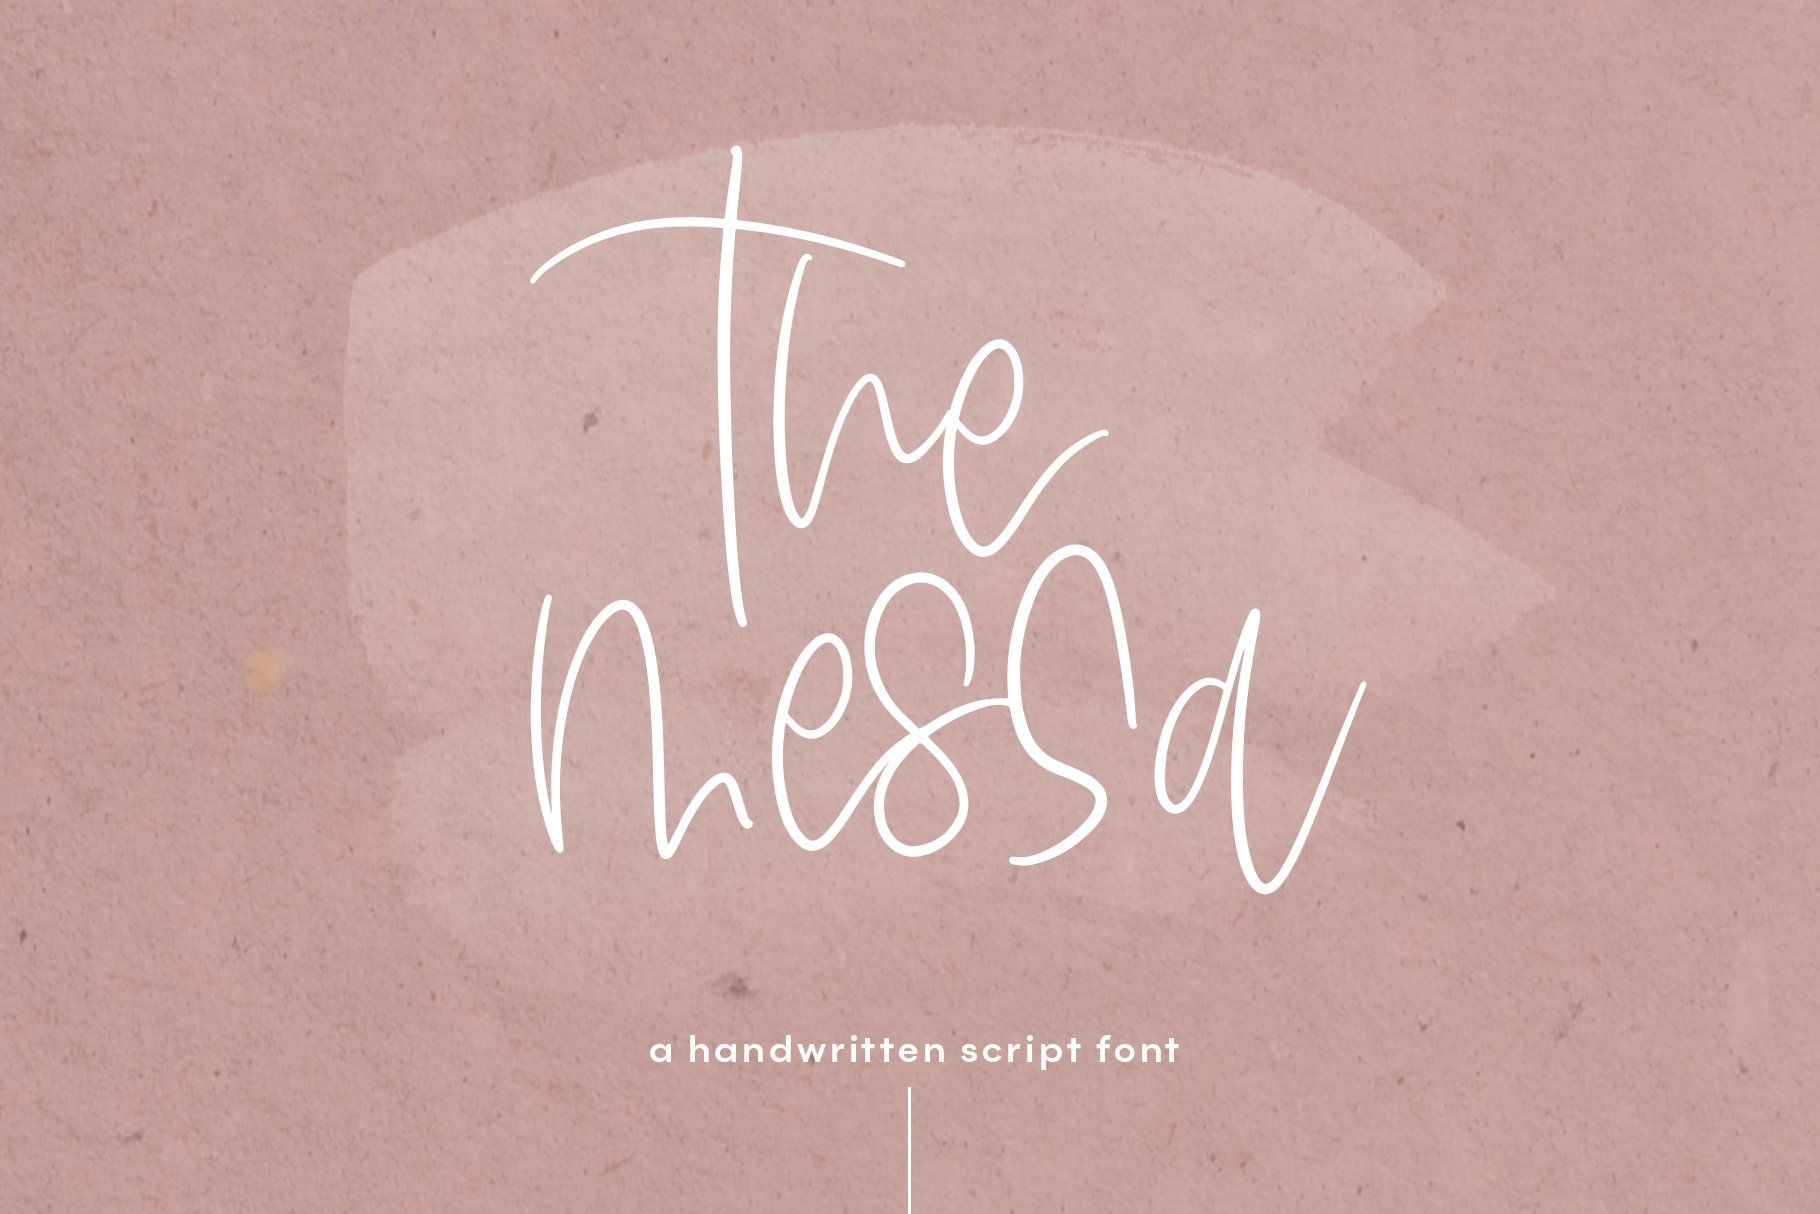 The Messa